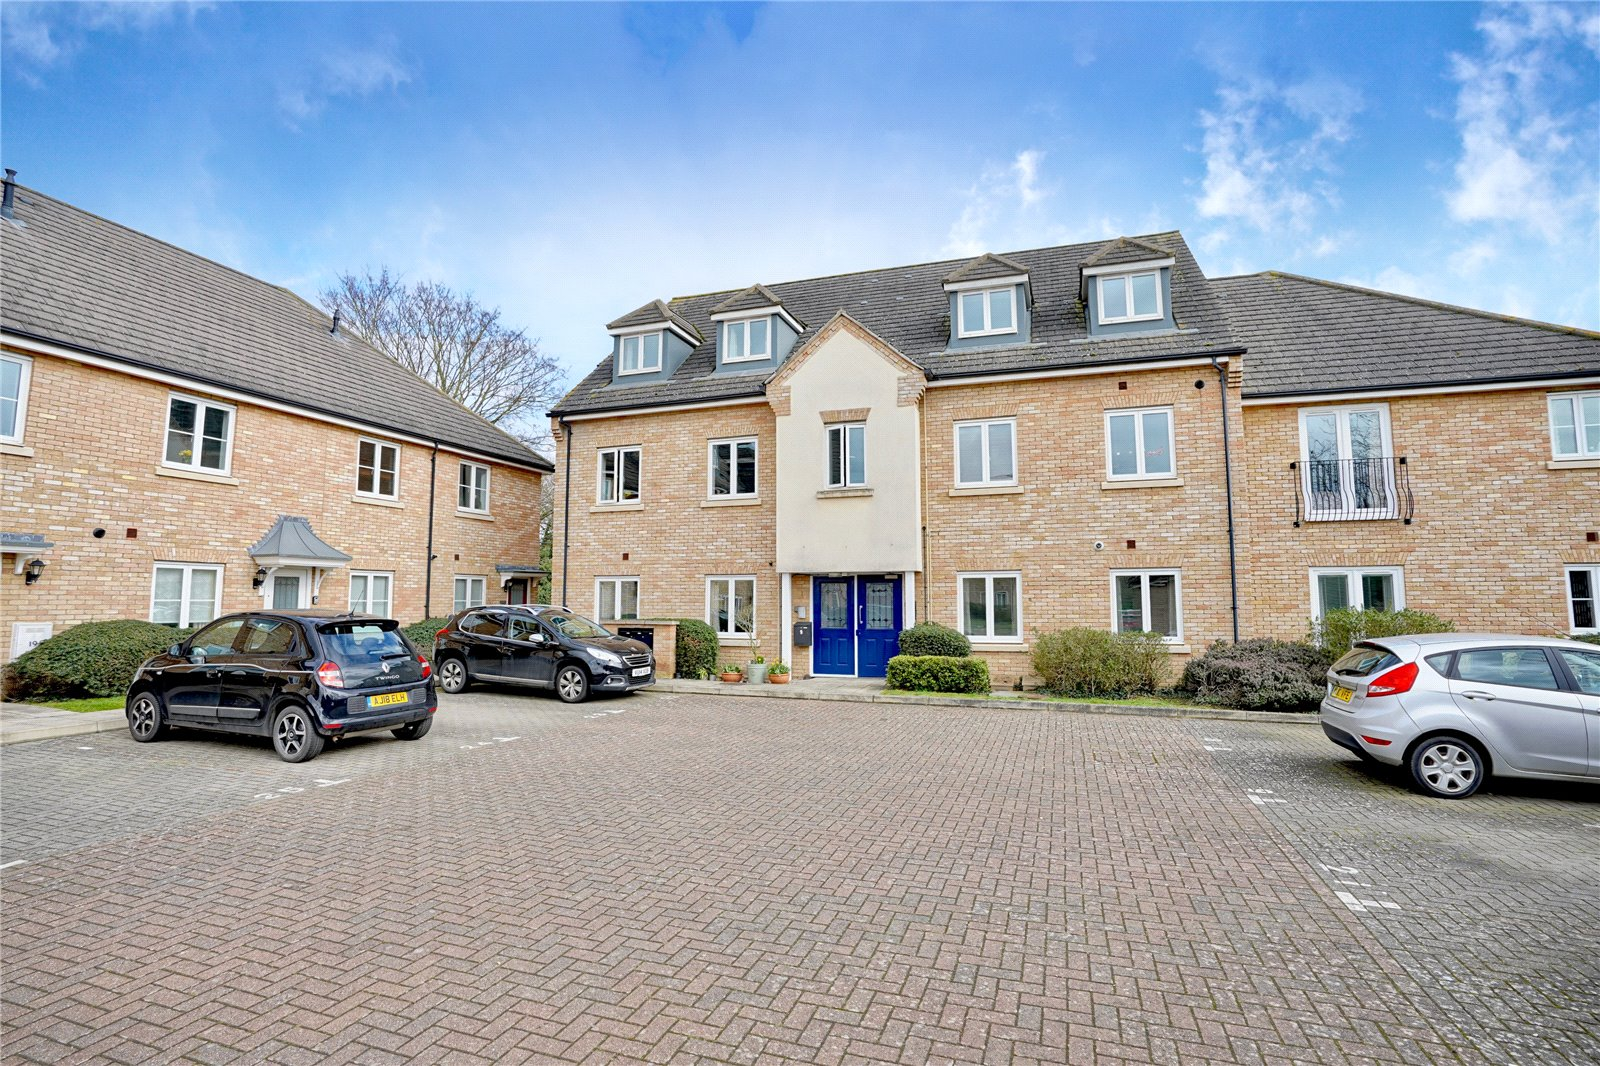 2 bed apartment for sale in St. Ives, PE27 5QL  - Property Image 11